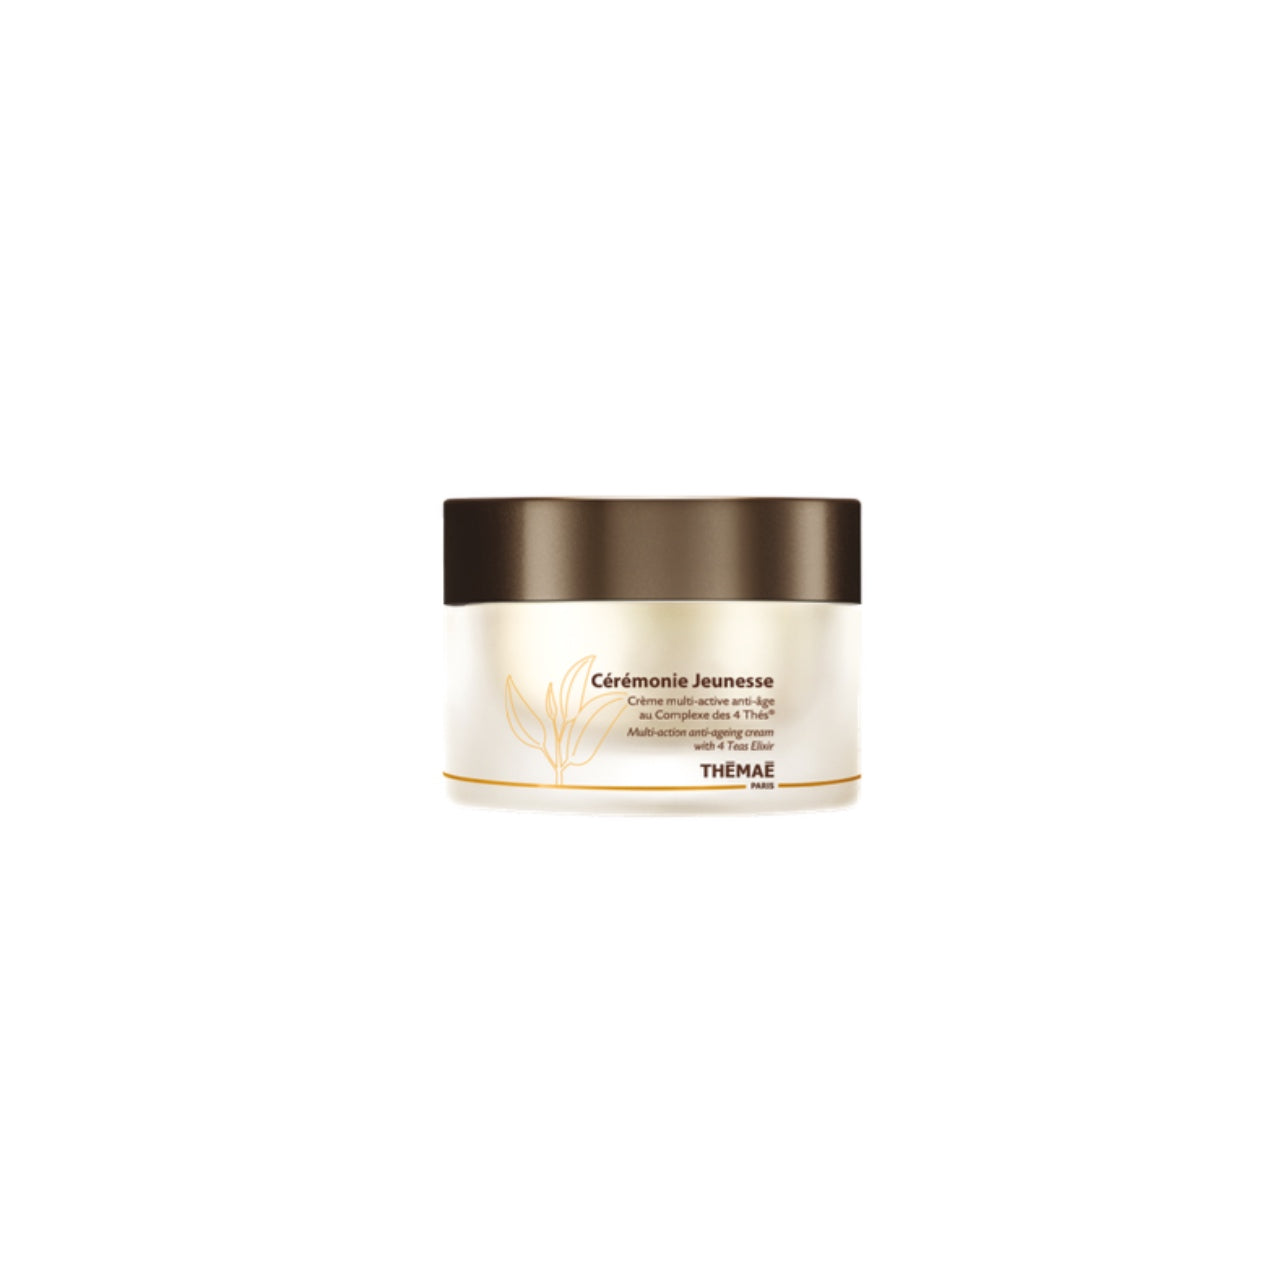 THEMAE Multi-action anti-ageing cream